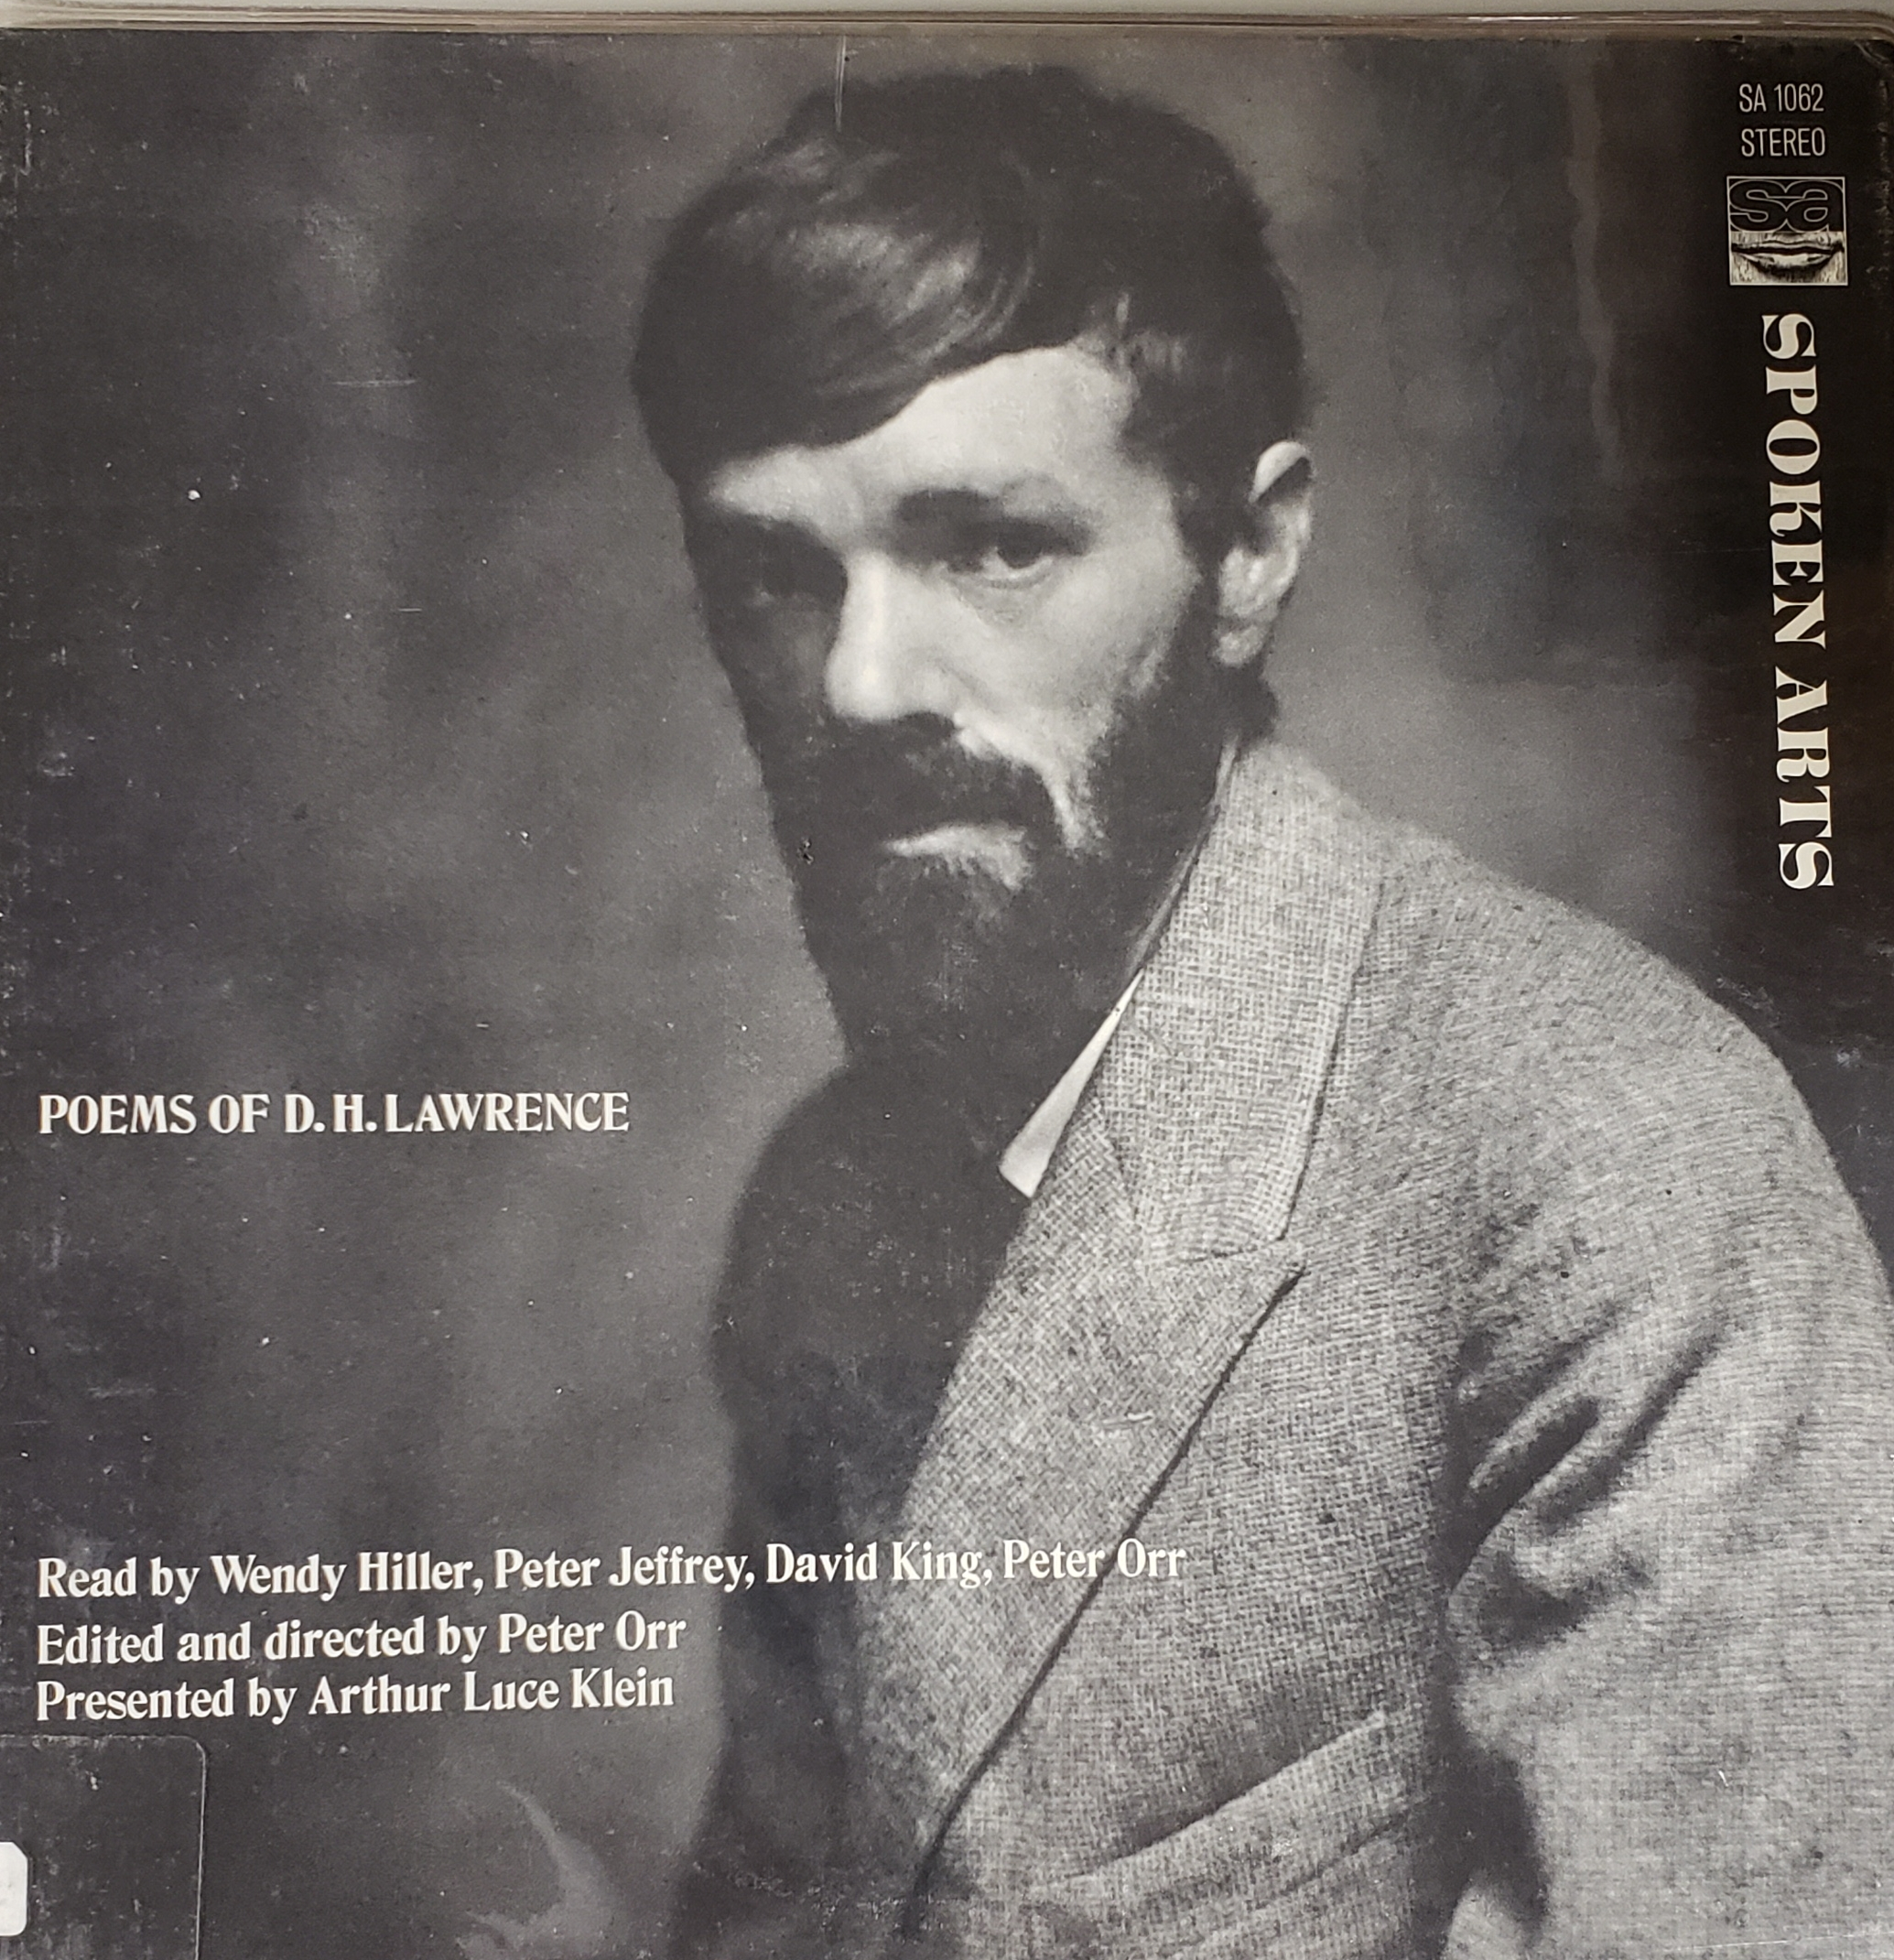 The poetry of D. H. Lawrence.